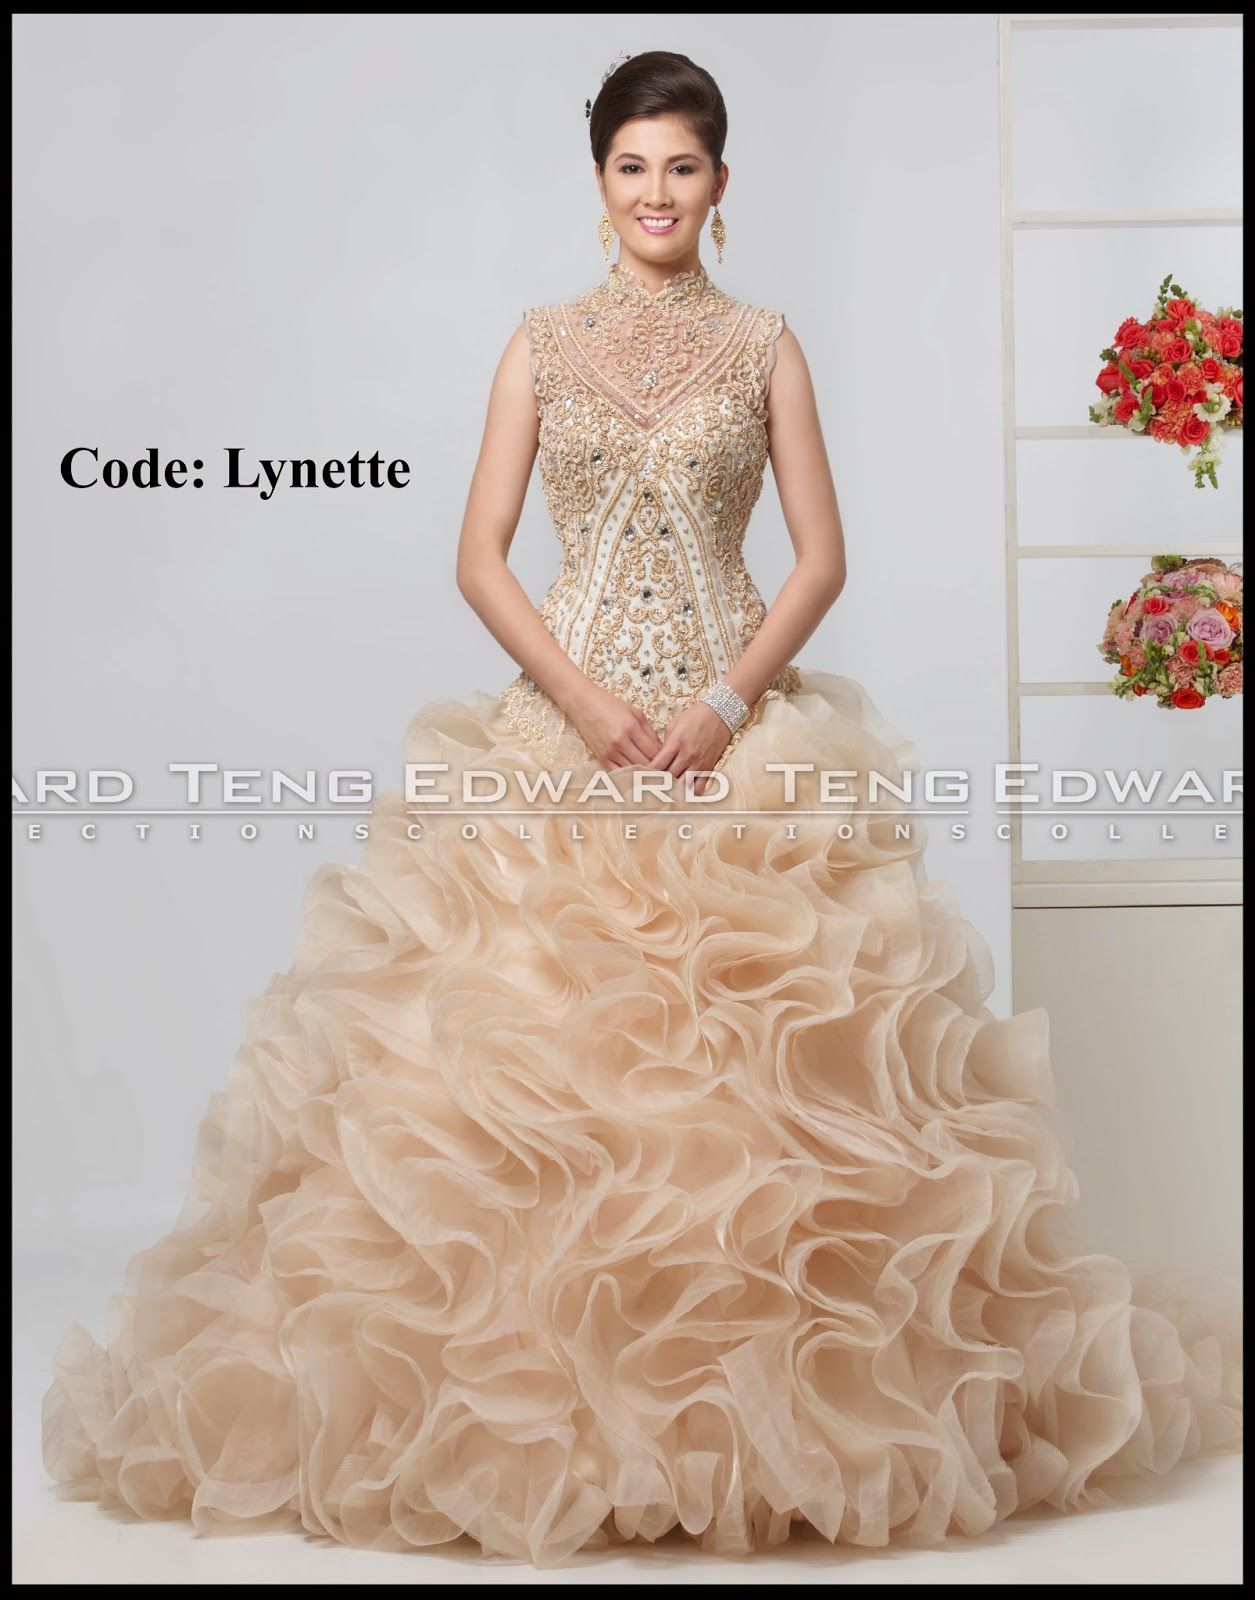 4a5ff19c3bf edward teng gown. edward teng gown Serpentina Gown